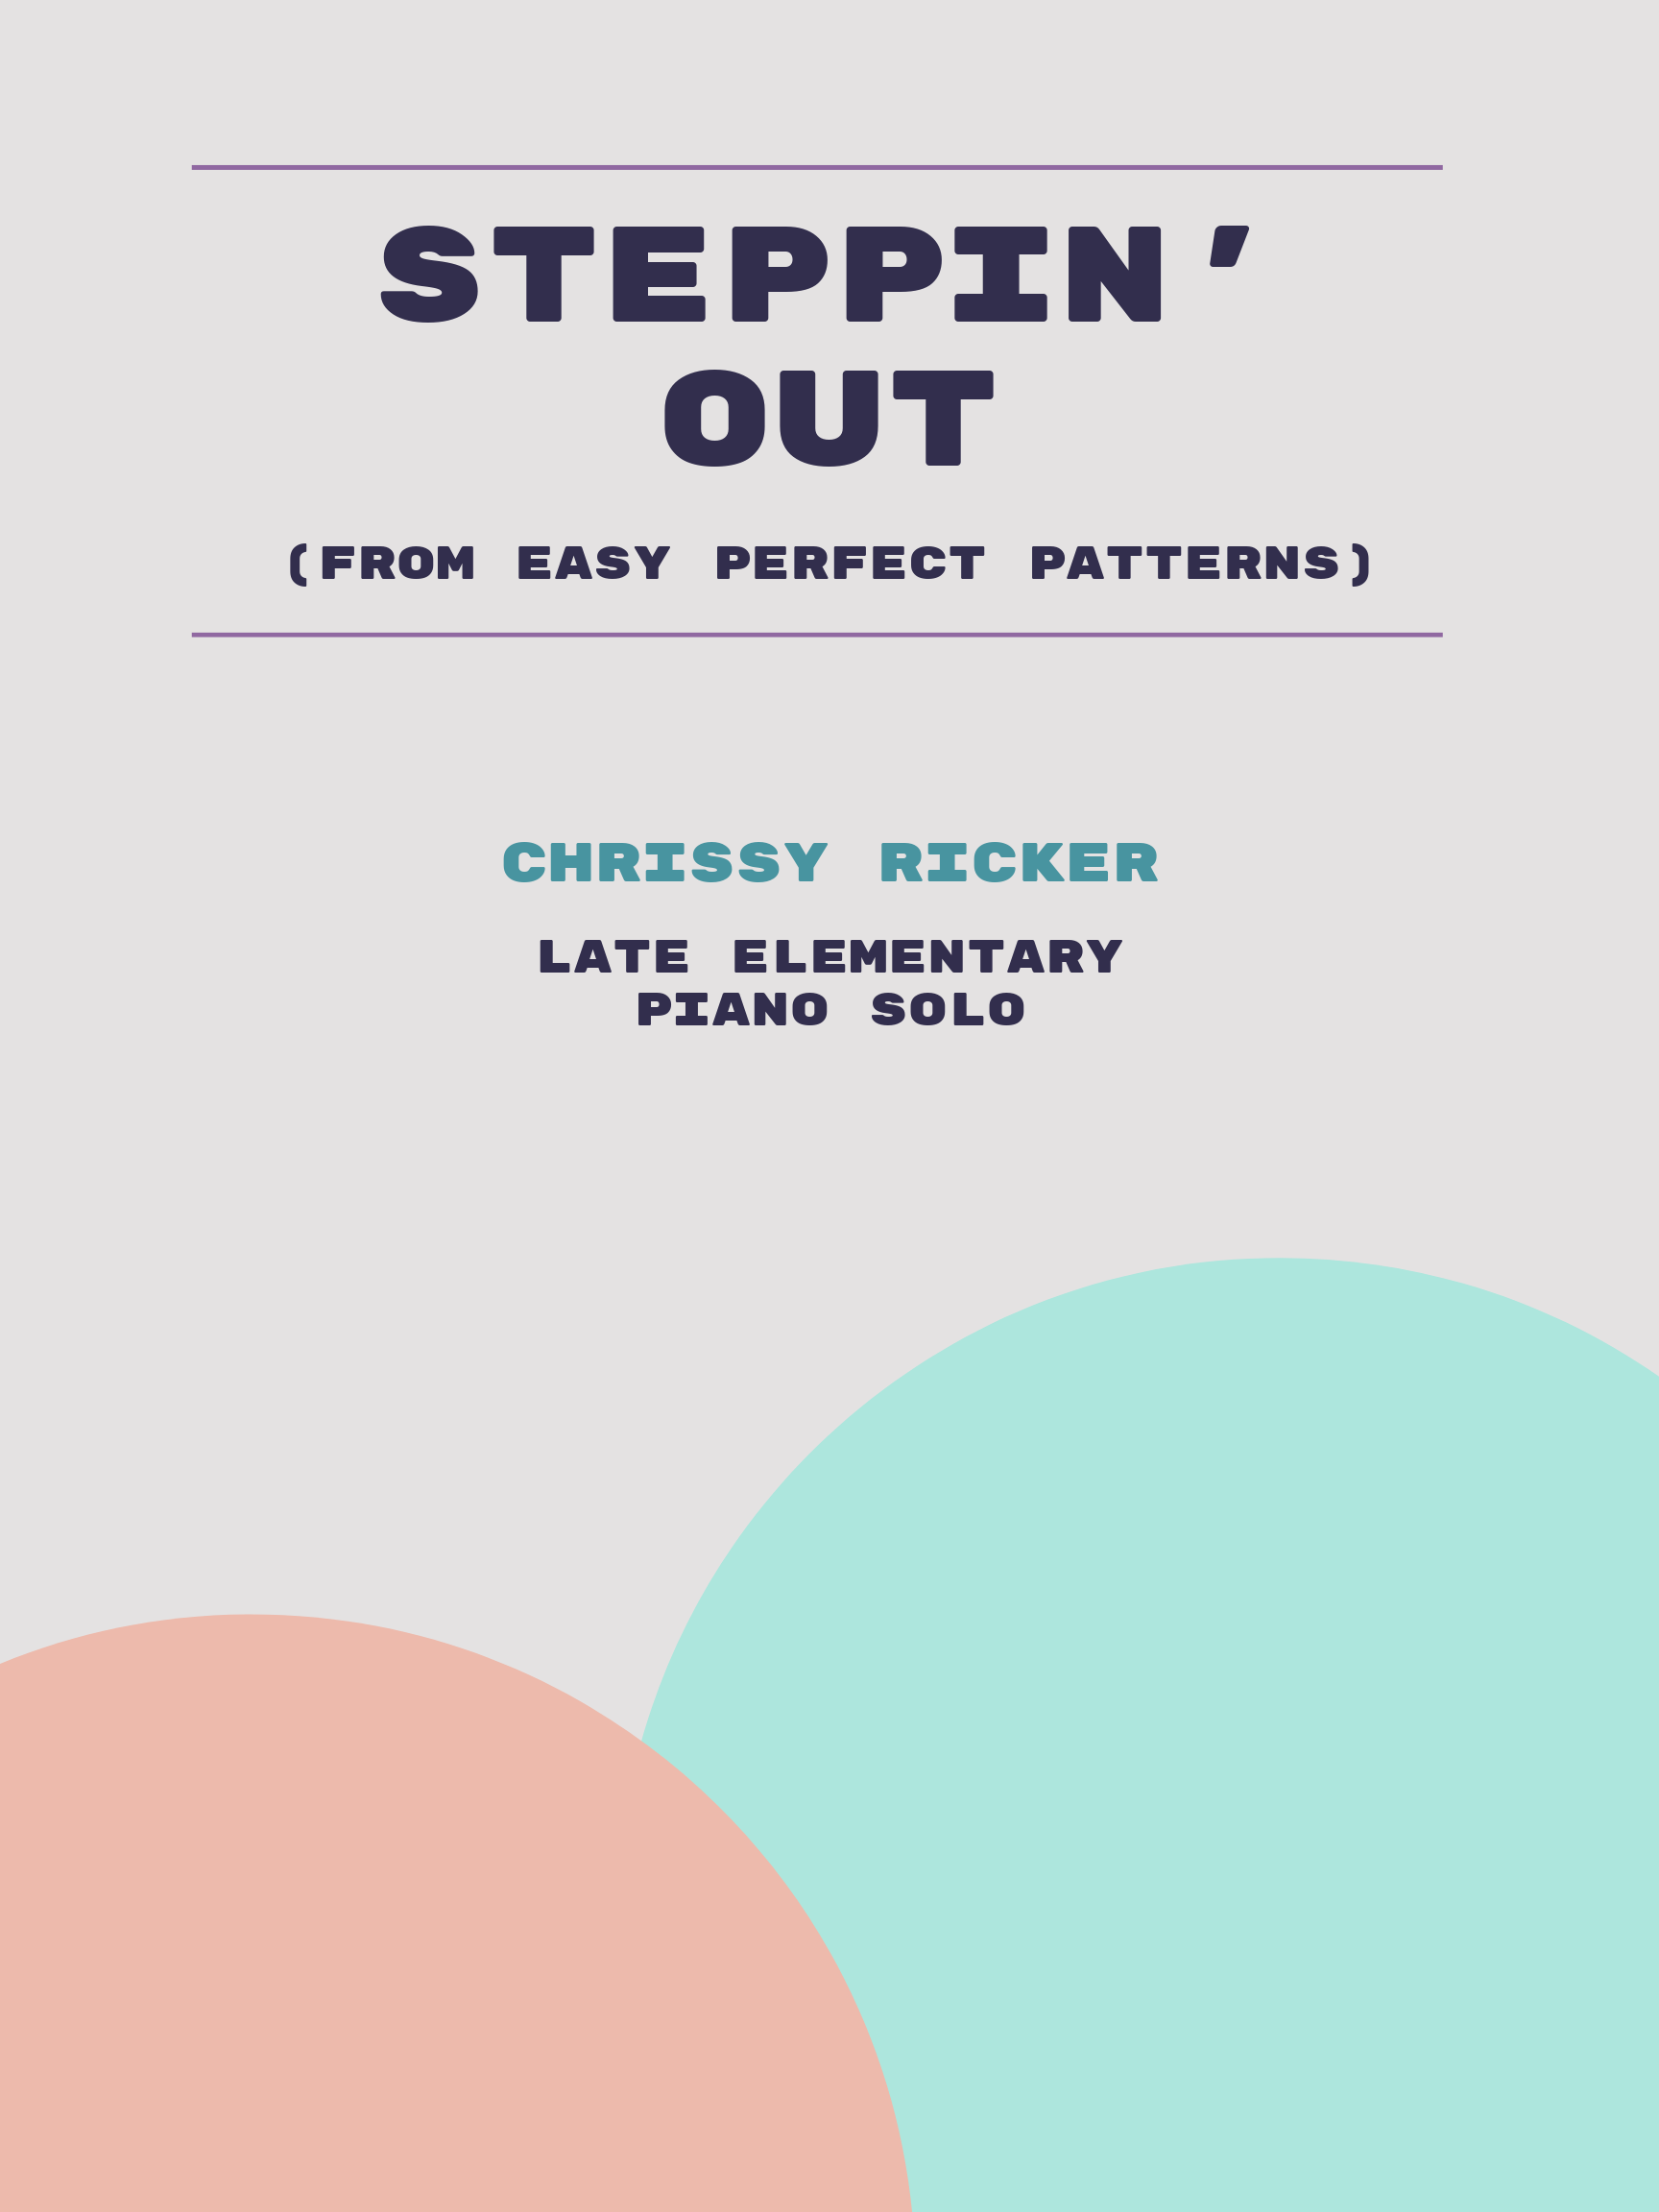 Steppin' Out by Chrissy Ricker